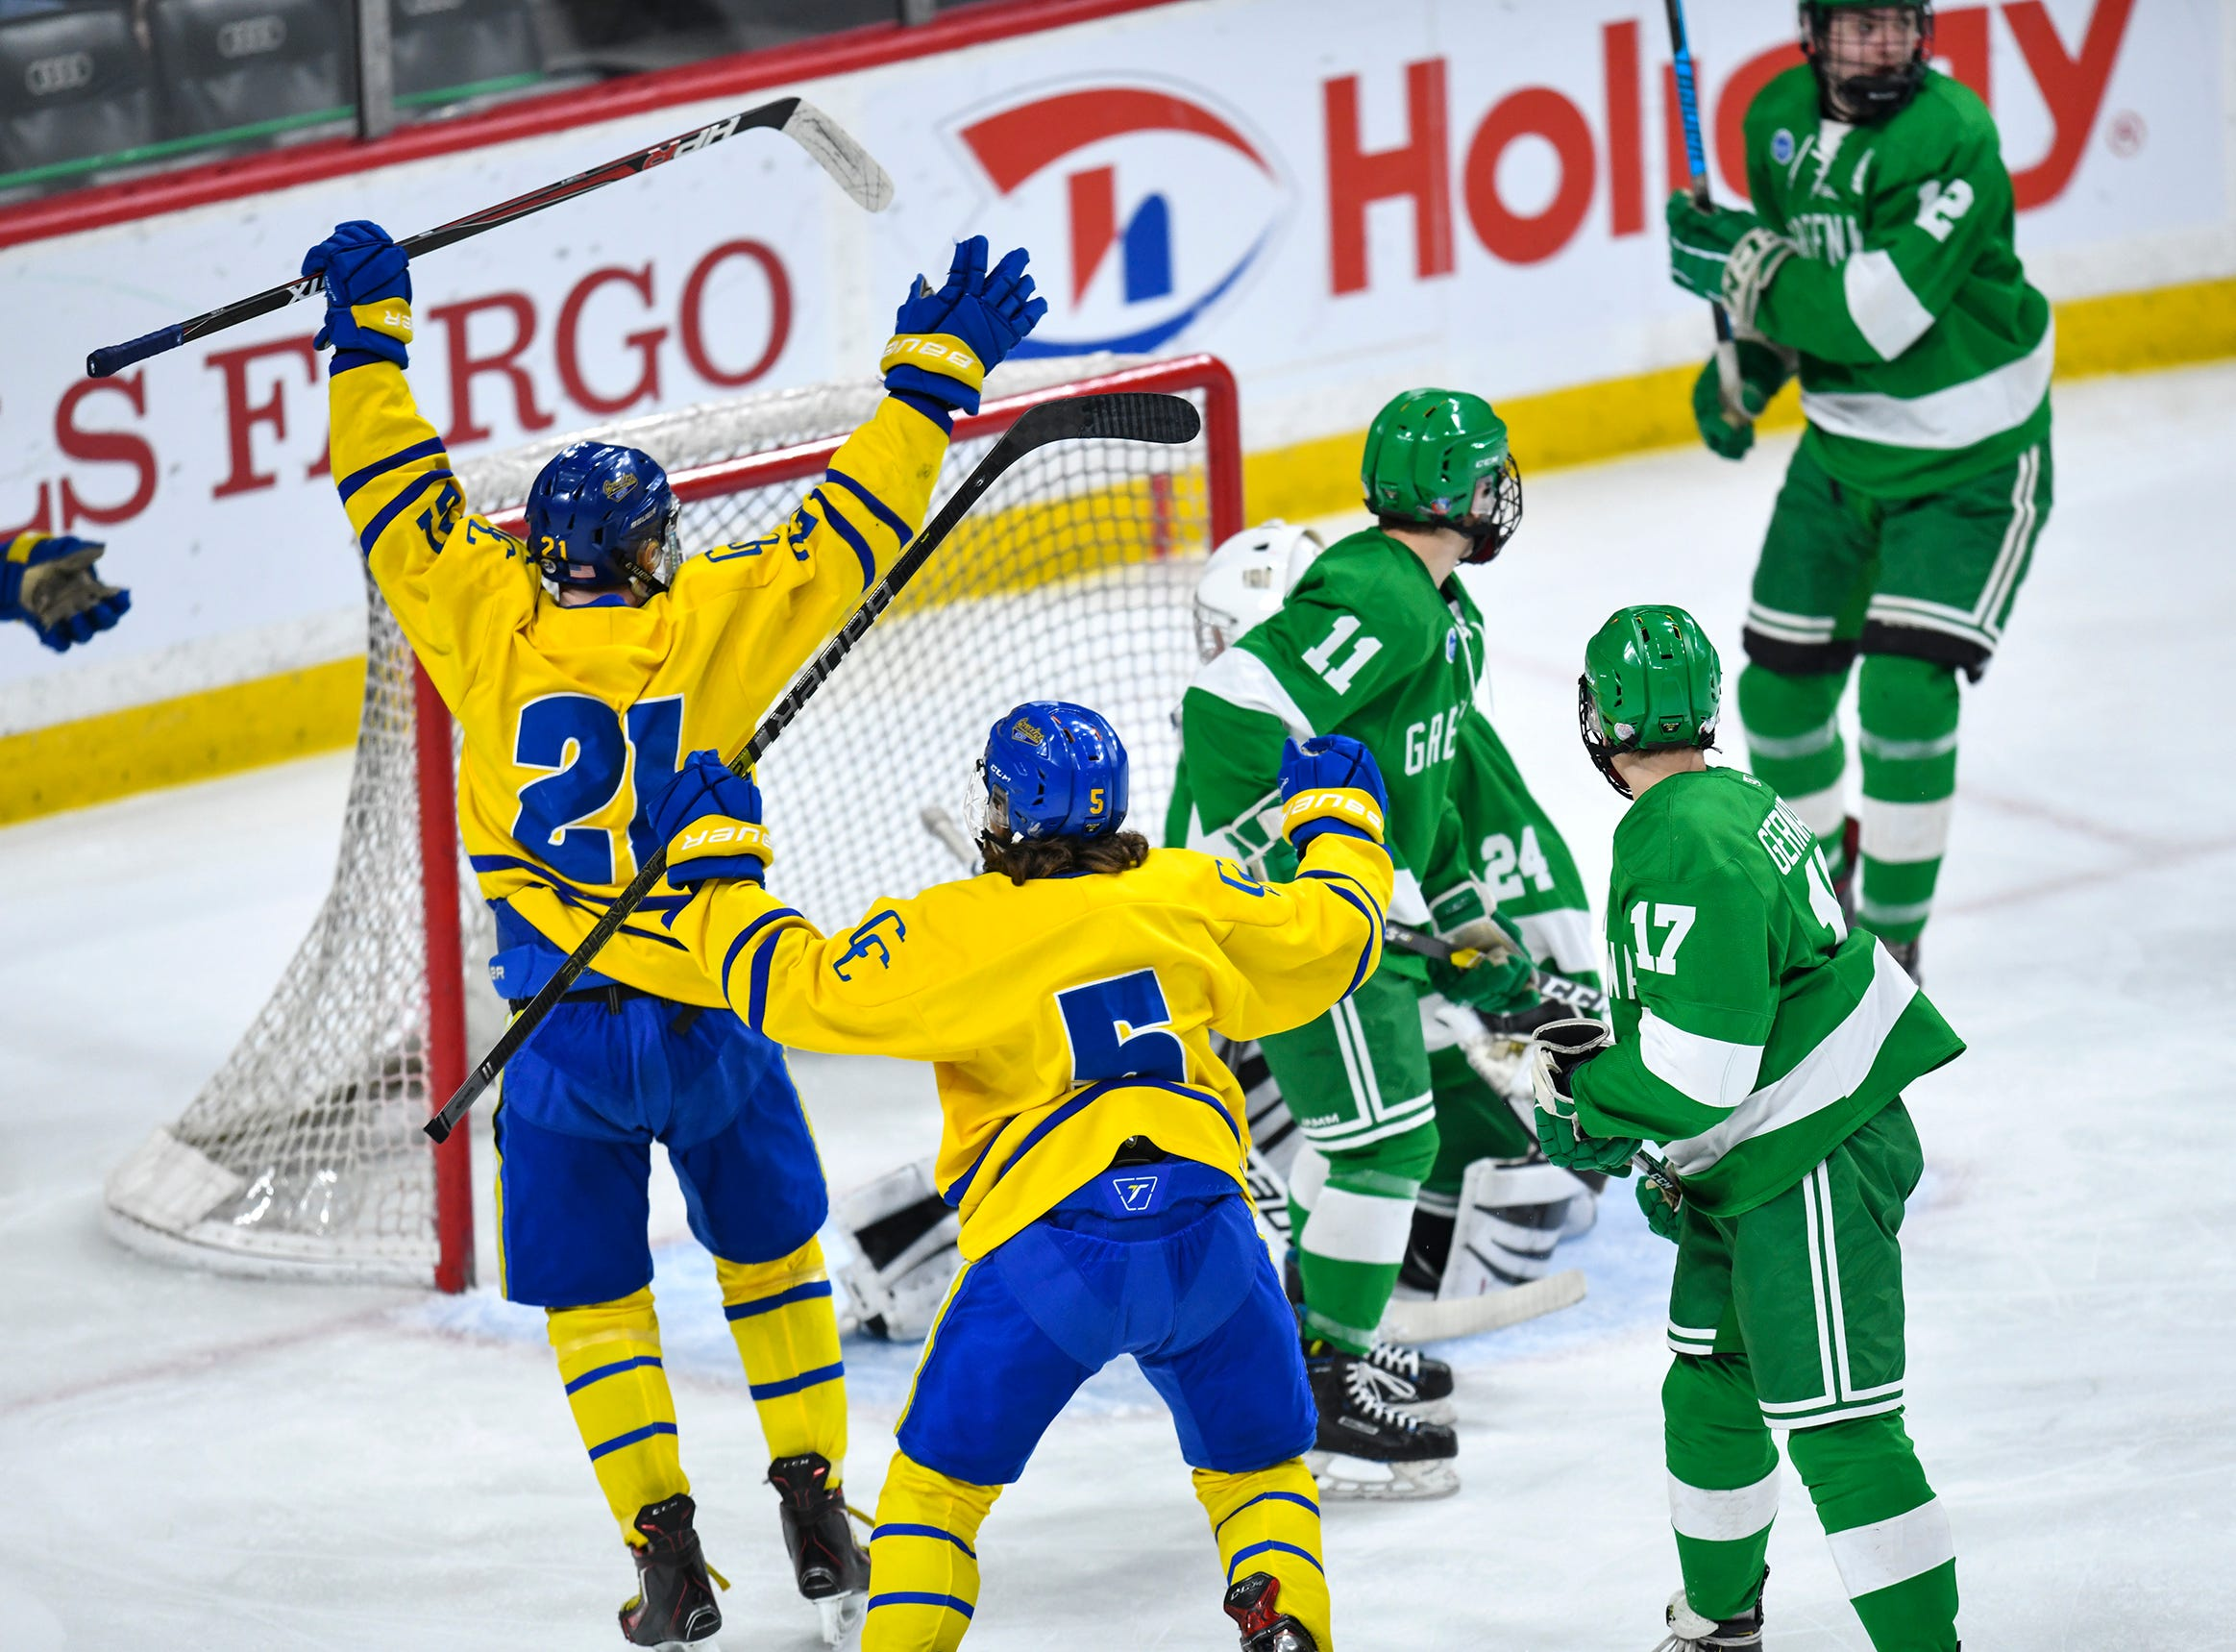 Cathedral players celebrate a first period goal during the state Class A championship game Saturday, March 9, 2019, at the Xcel Energy Center in St. Paul.